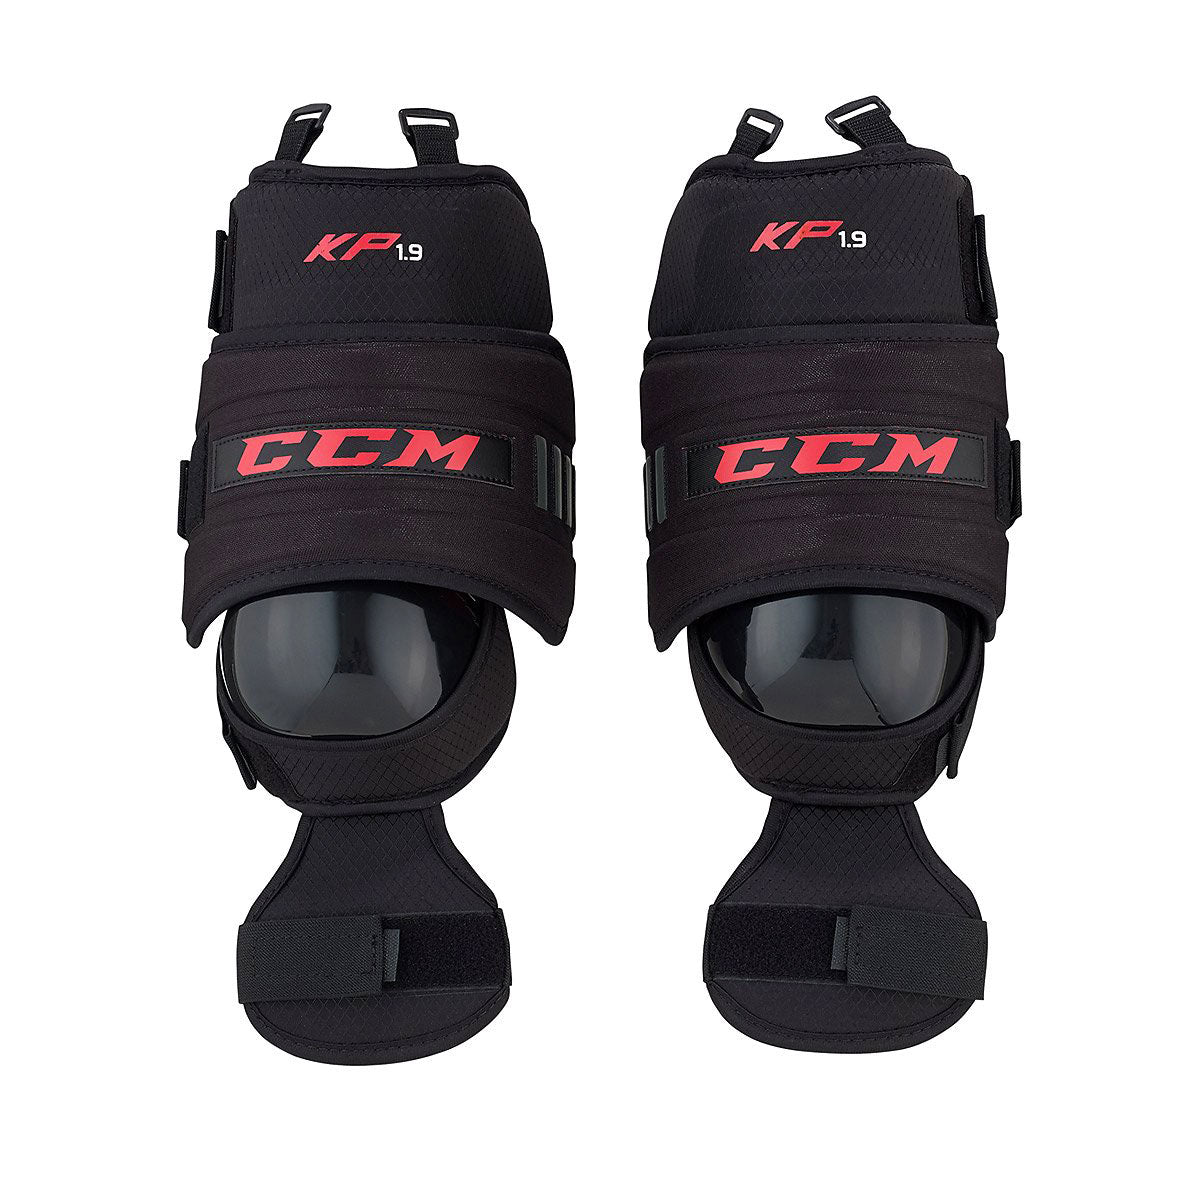 CCM 1.9 Senior Knee & Thigh Pads